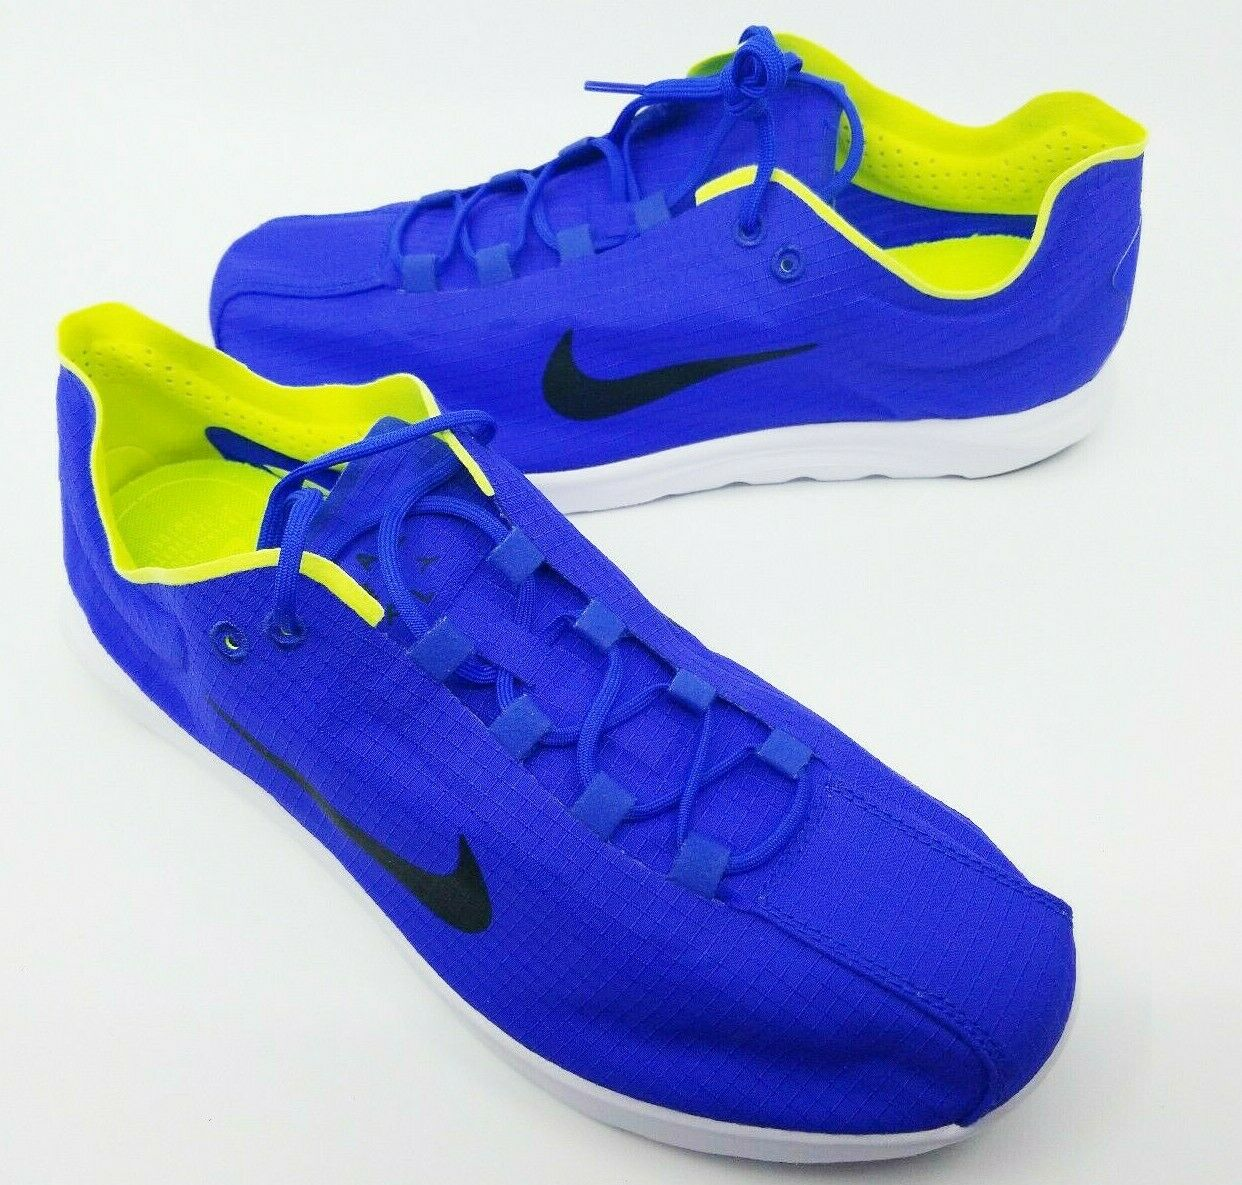 Nike Mayfly Lite SE bluee Yellow Lace Up Mens Sneakers shoes Size 10